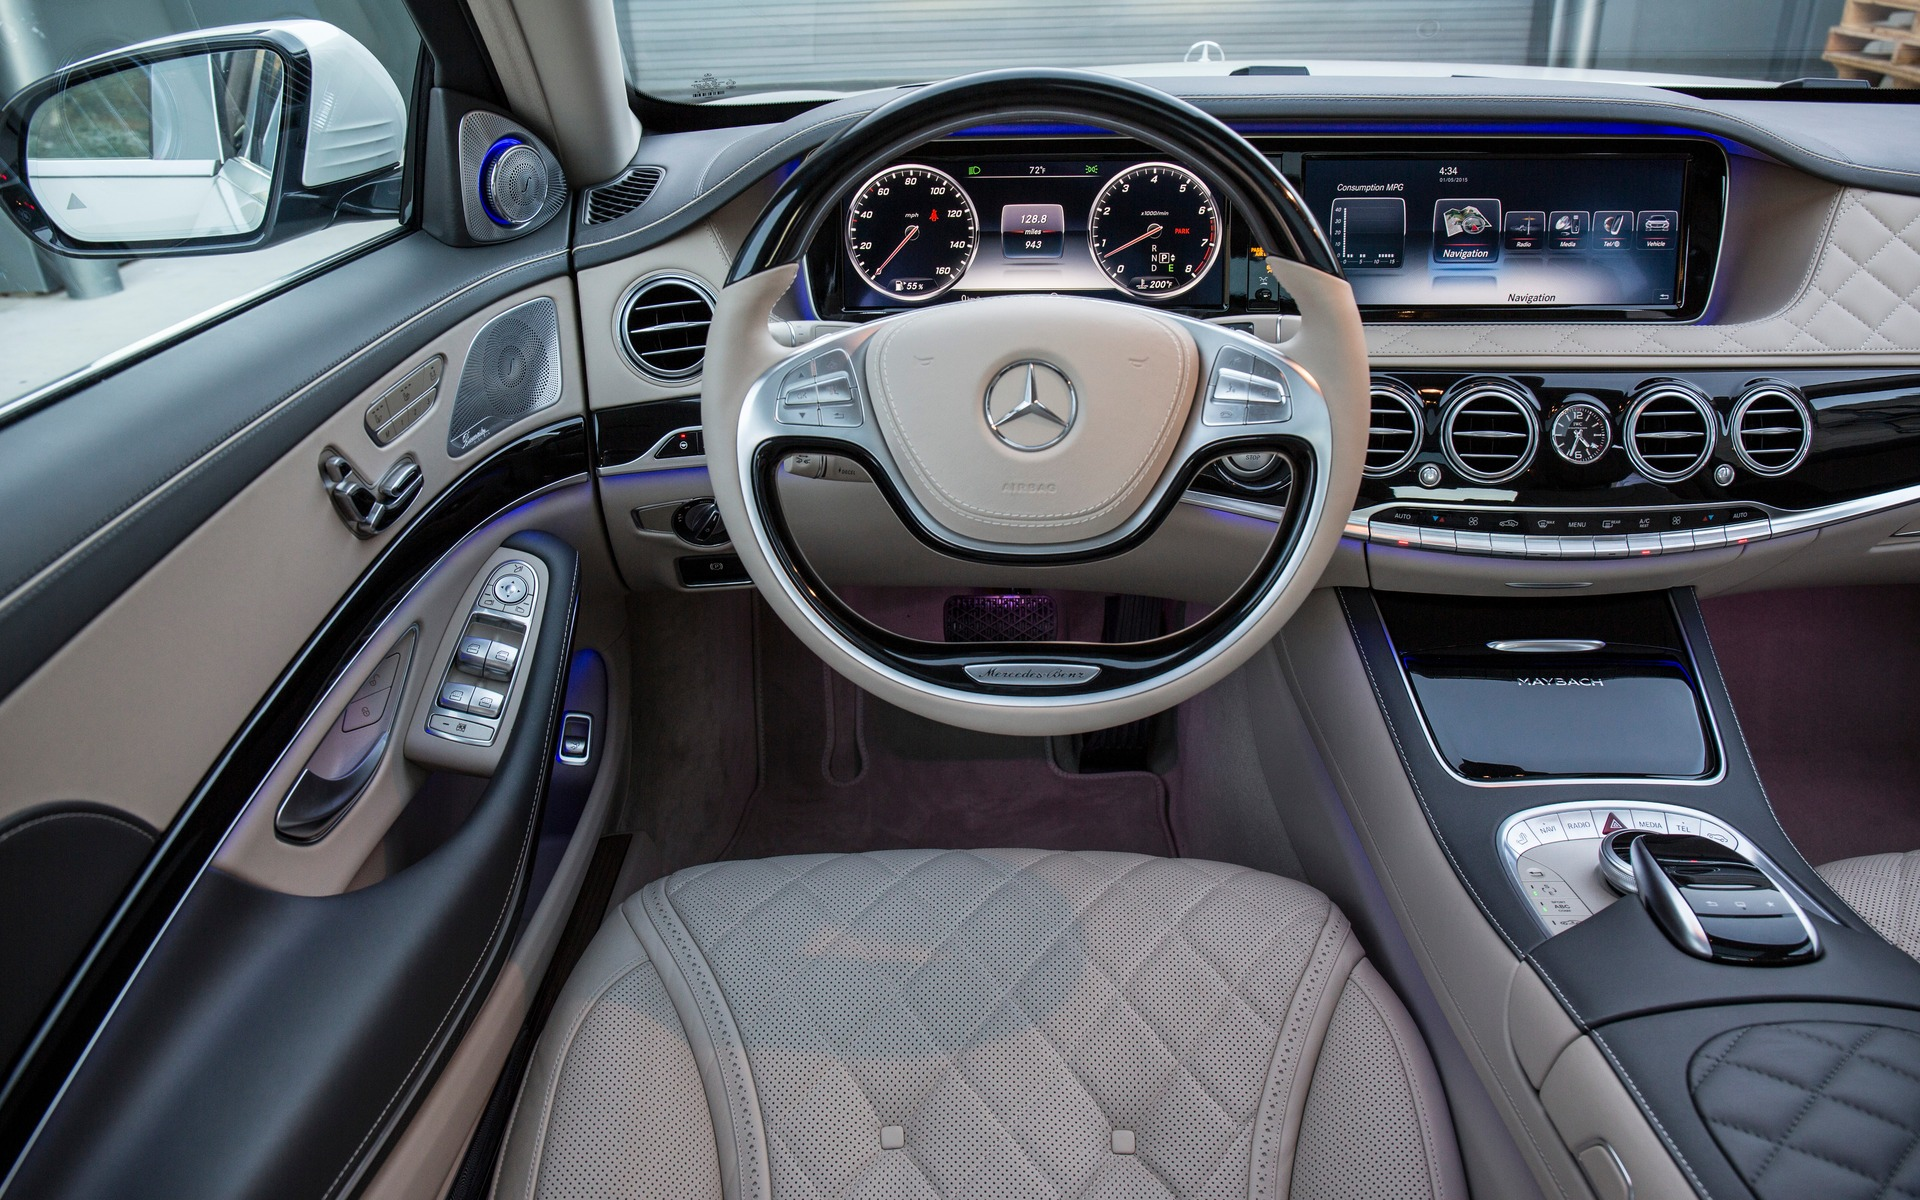 2016 mercedes benz s class photos 5 8 the car guide. Black Bedroom Furniture Sets. Home Design Ideas